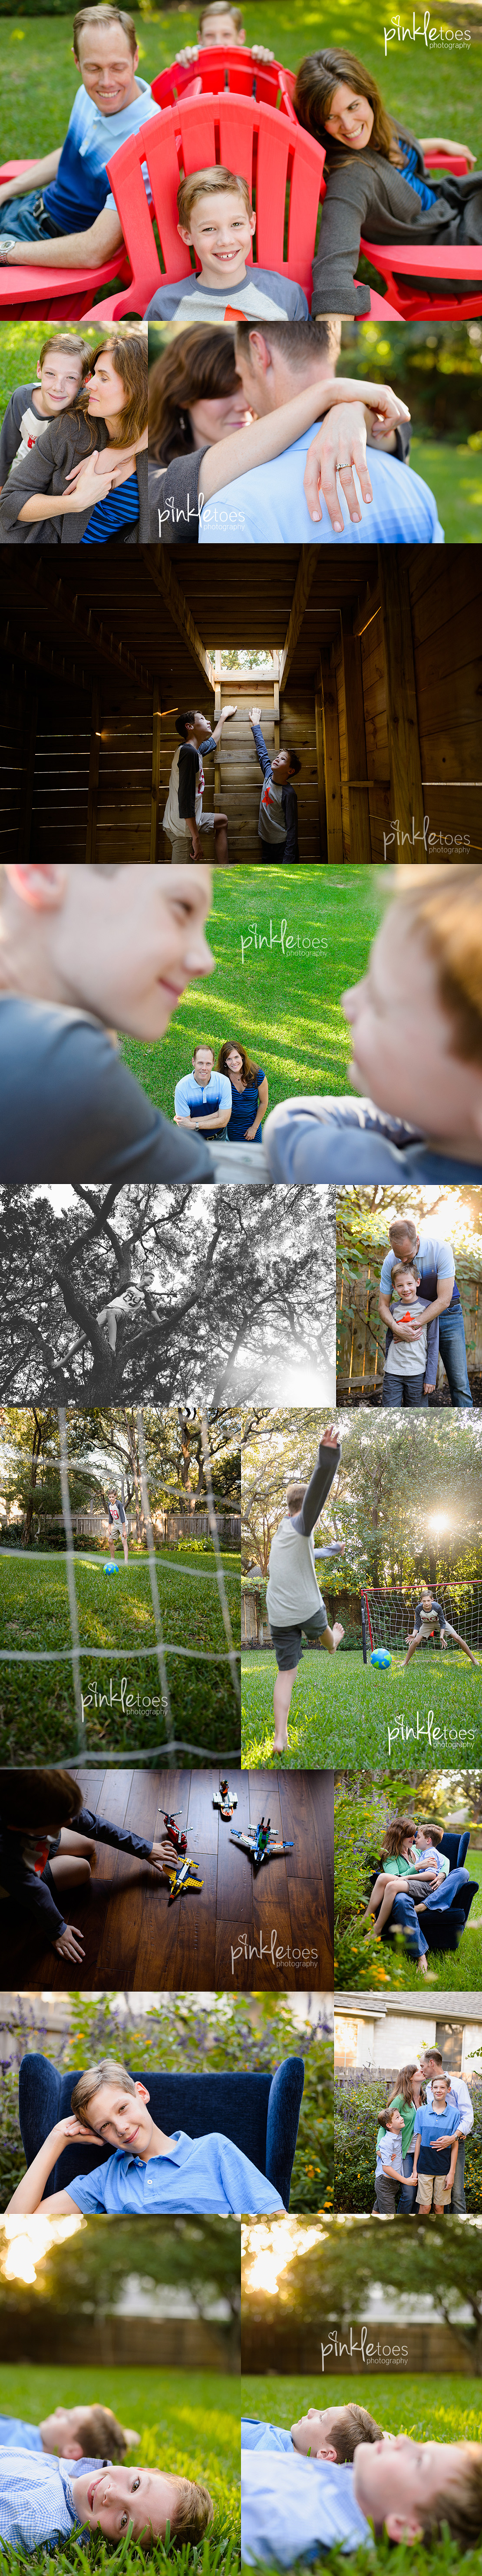 austin-family-photographer-photo-session-legos-treehouse-zipline-soccer-boys